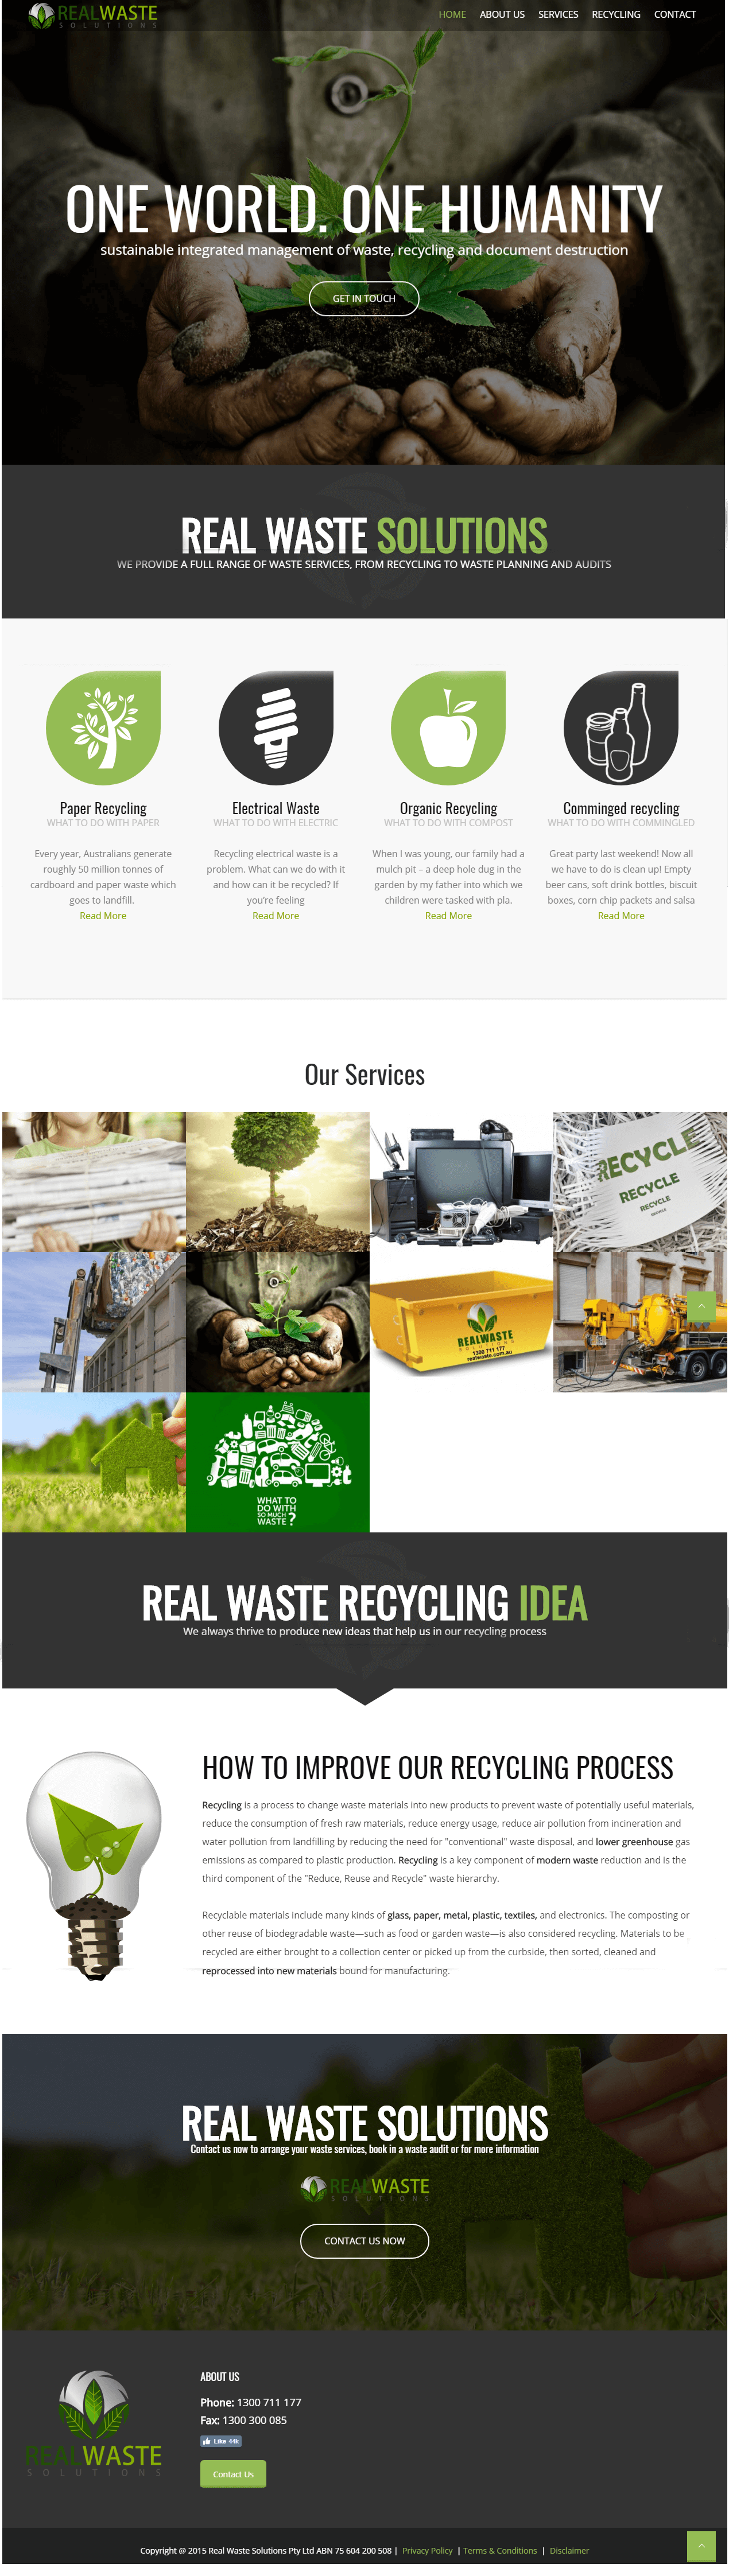 Waste choice company